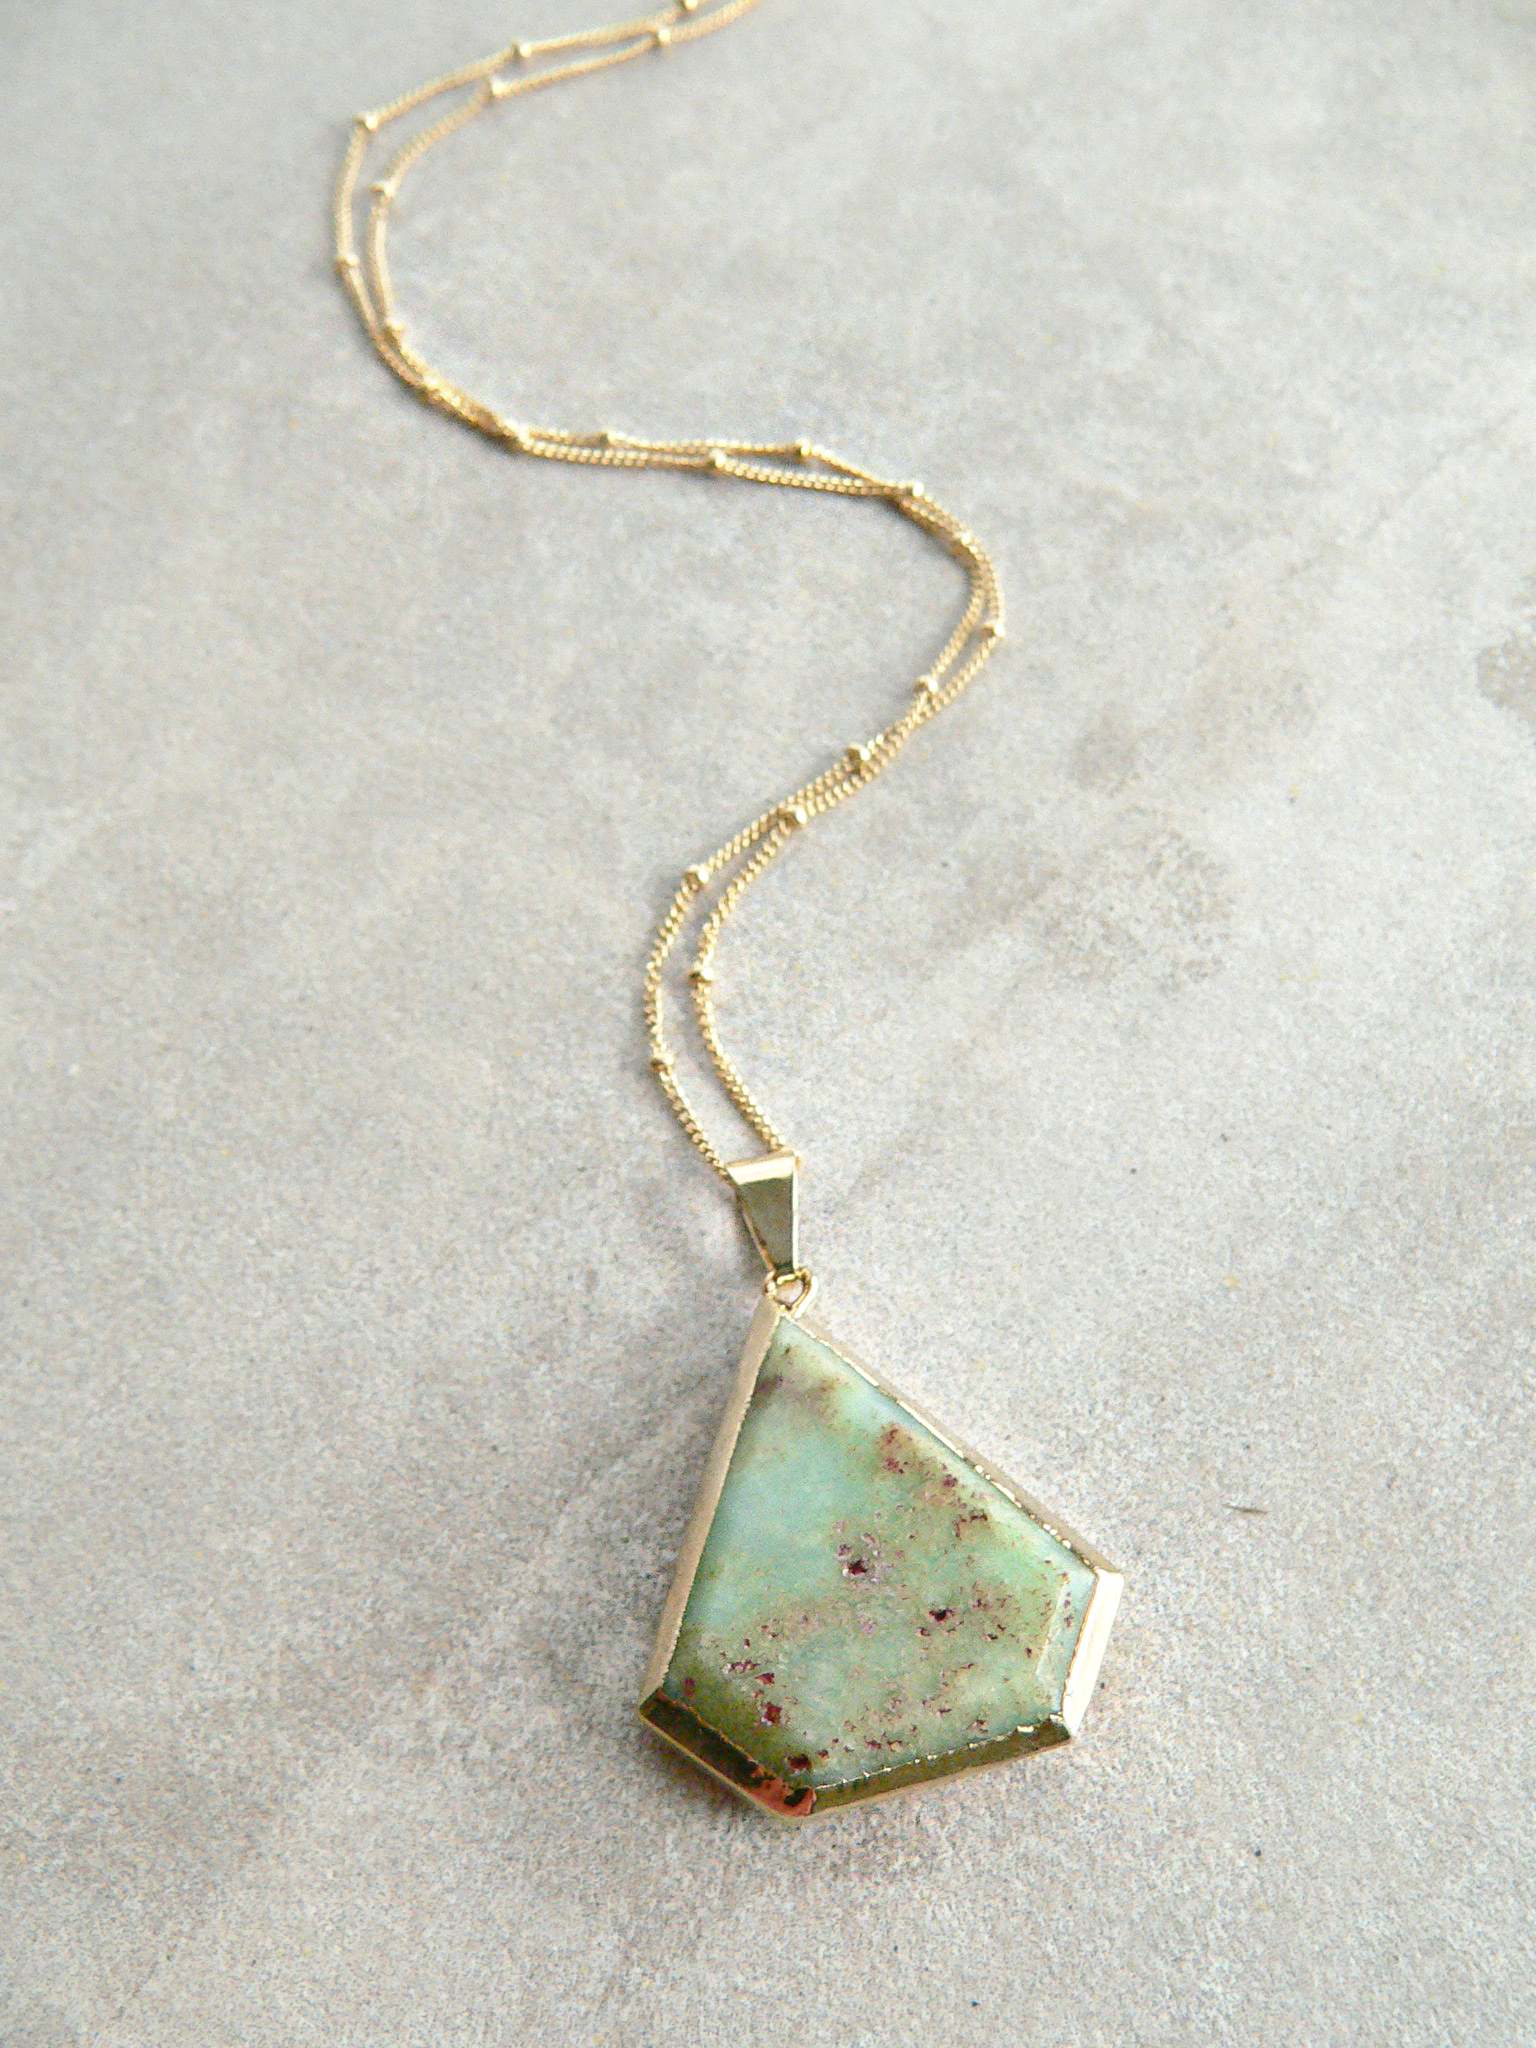 CHRYSOPRASE STONE NECKLACE